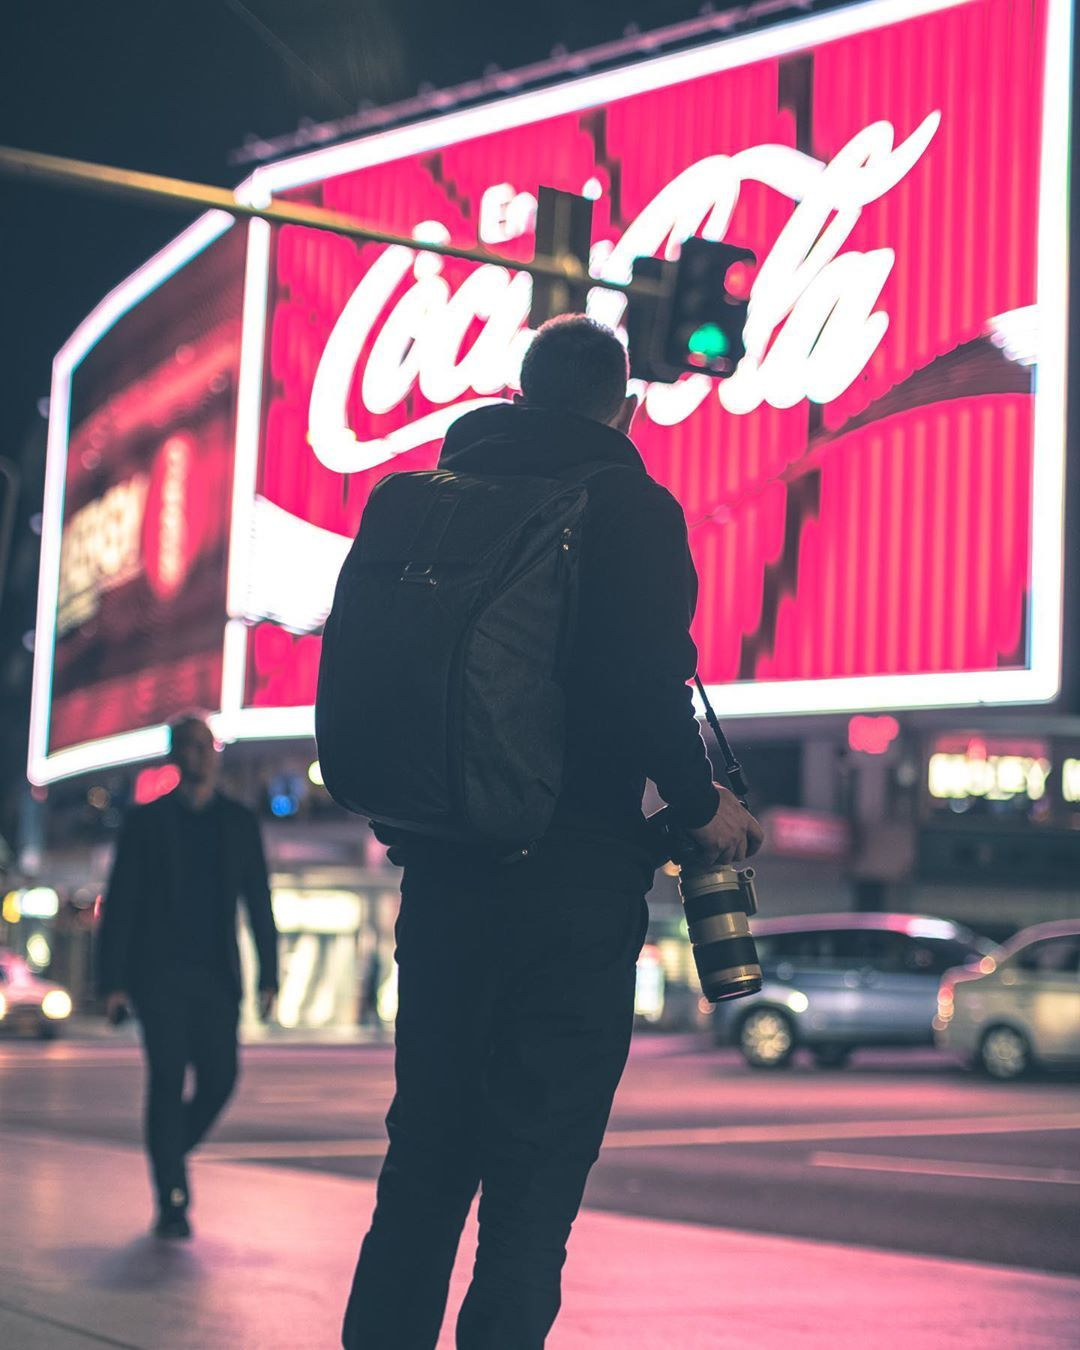 If you want it, you gotta get your ass out there, you gotta be available, you gotta be present first.  In frame: @therealnickturner . . . . . . #fujixaus #meetup #streetphotography #moodygrams #moodynight #nightphotography #night #neon #cokesign #nightphotography #ourportraitdays  #fatalframes #way2ill #urbanjungle #urbanlights